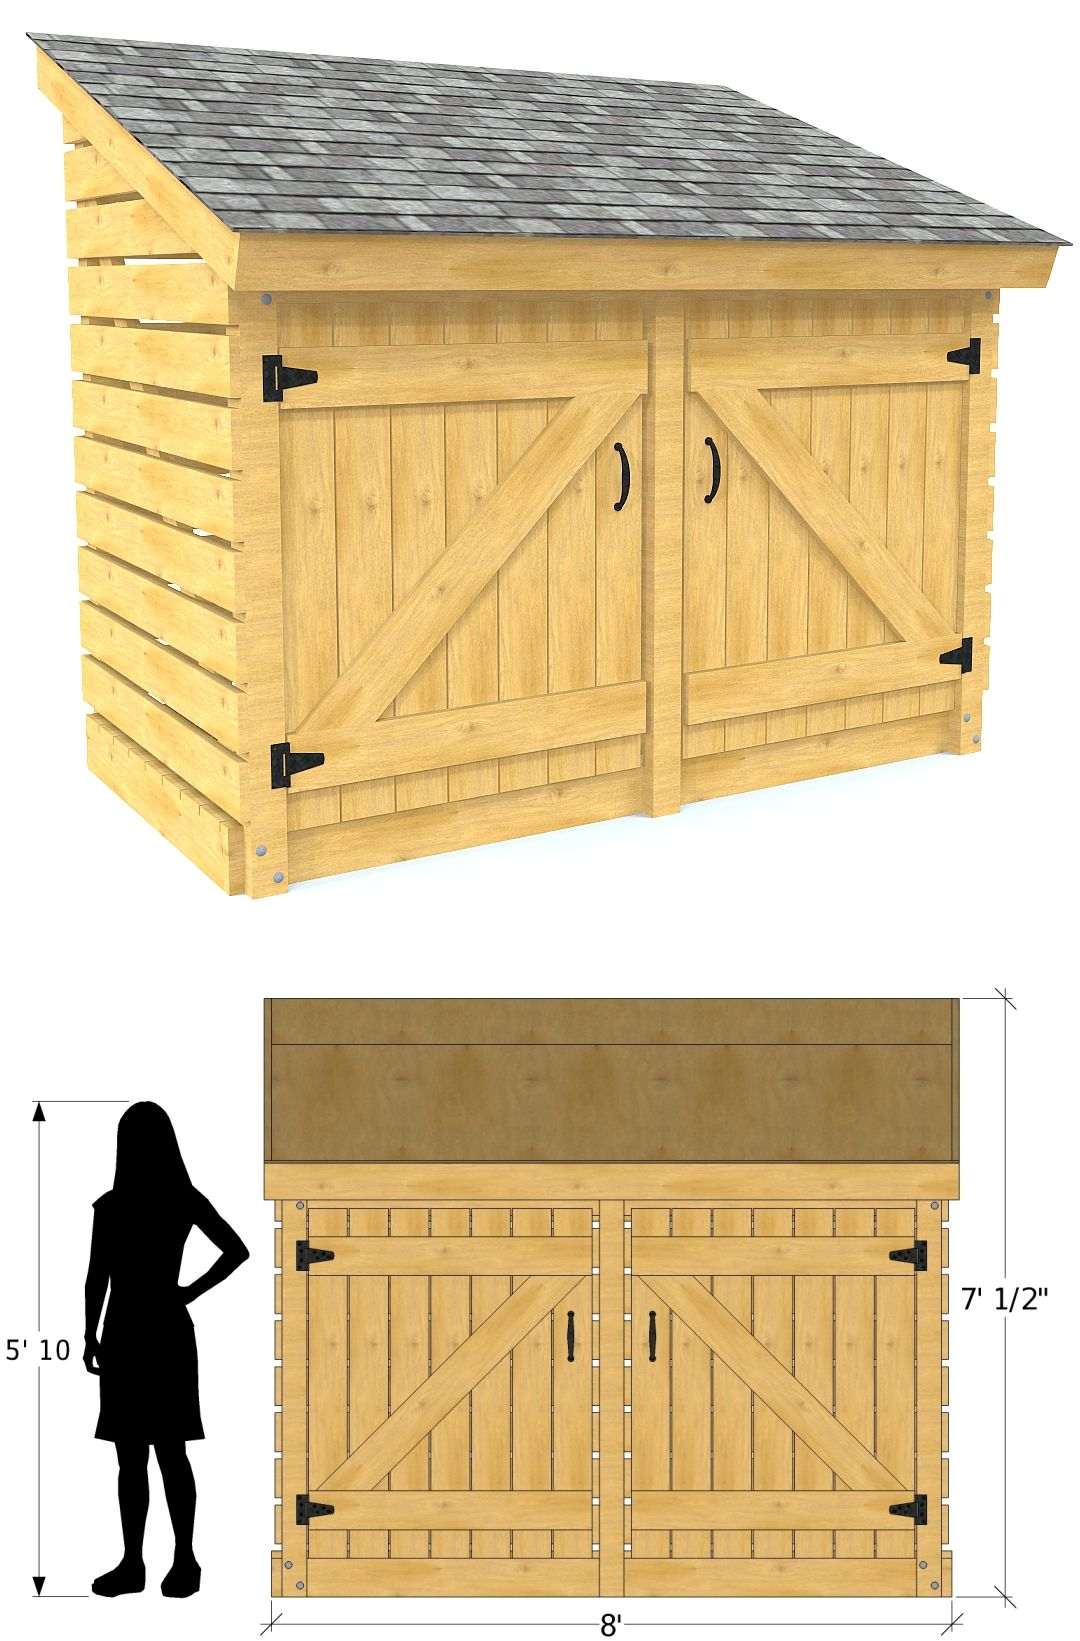 4x8 Free Small Shed Plan In 2020 Small Shed Plans Wood Shed Plans Shed Storage